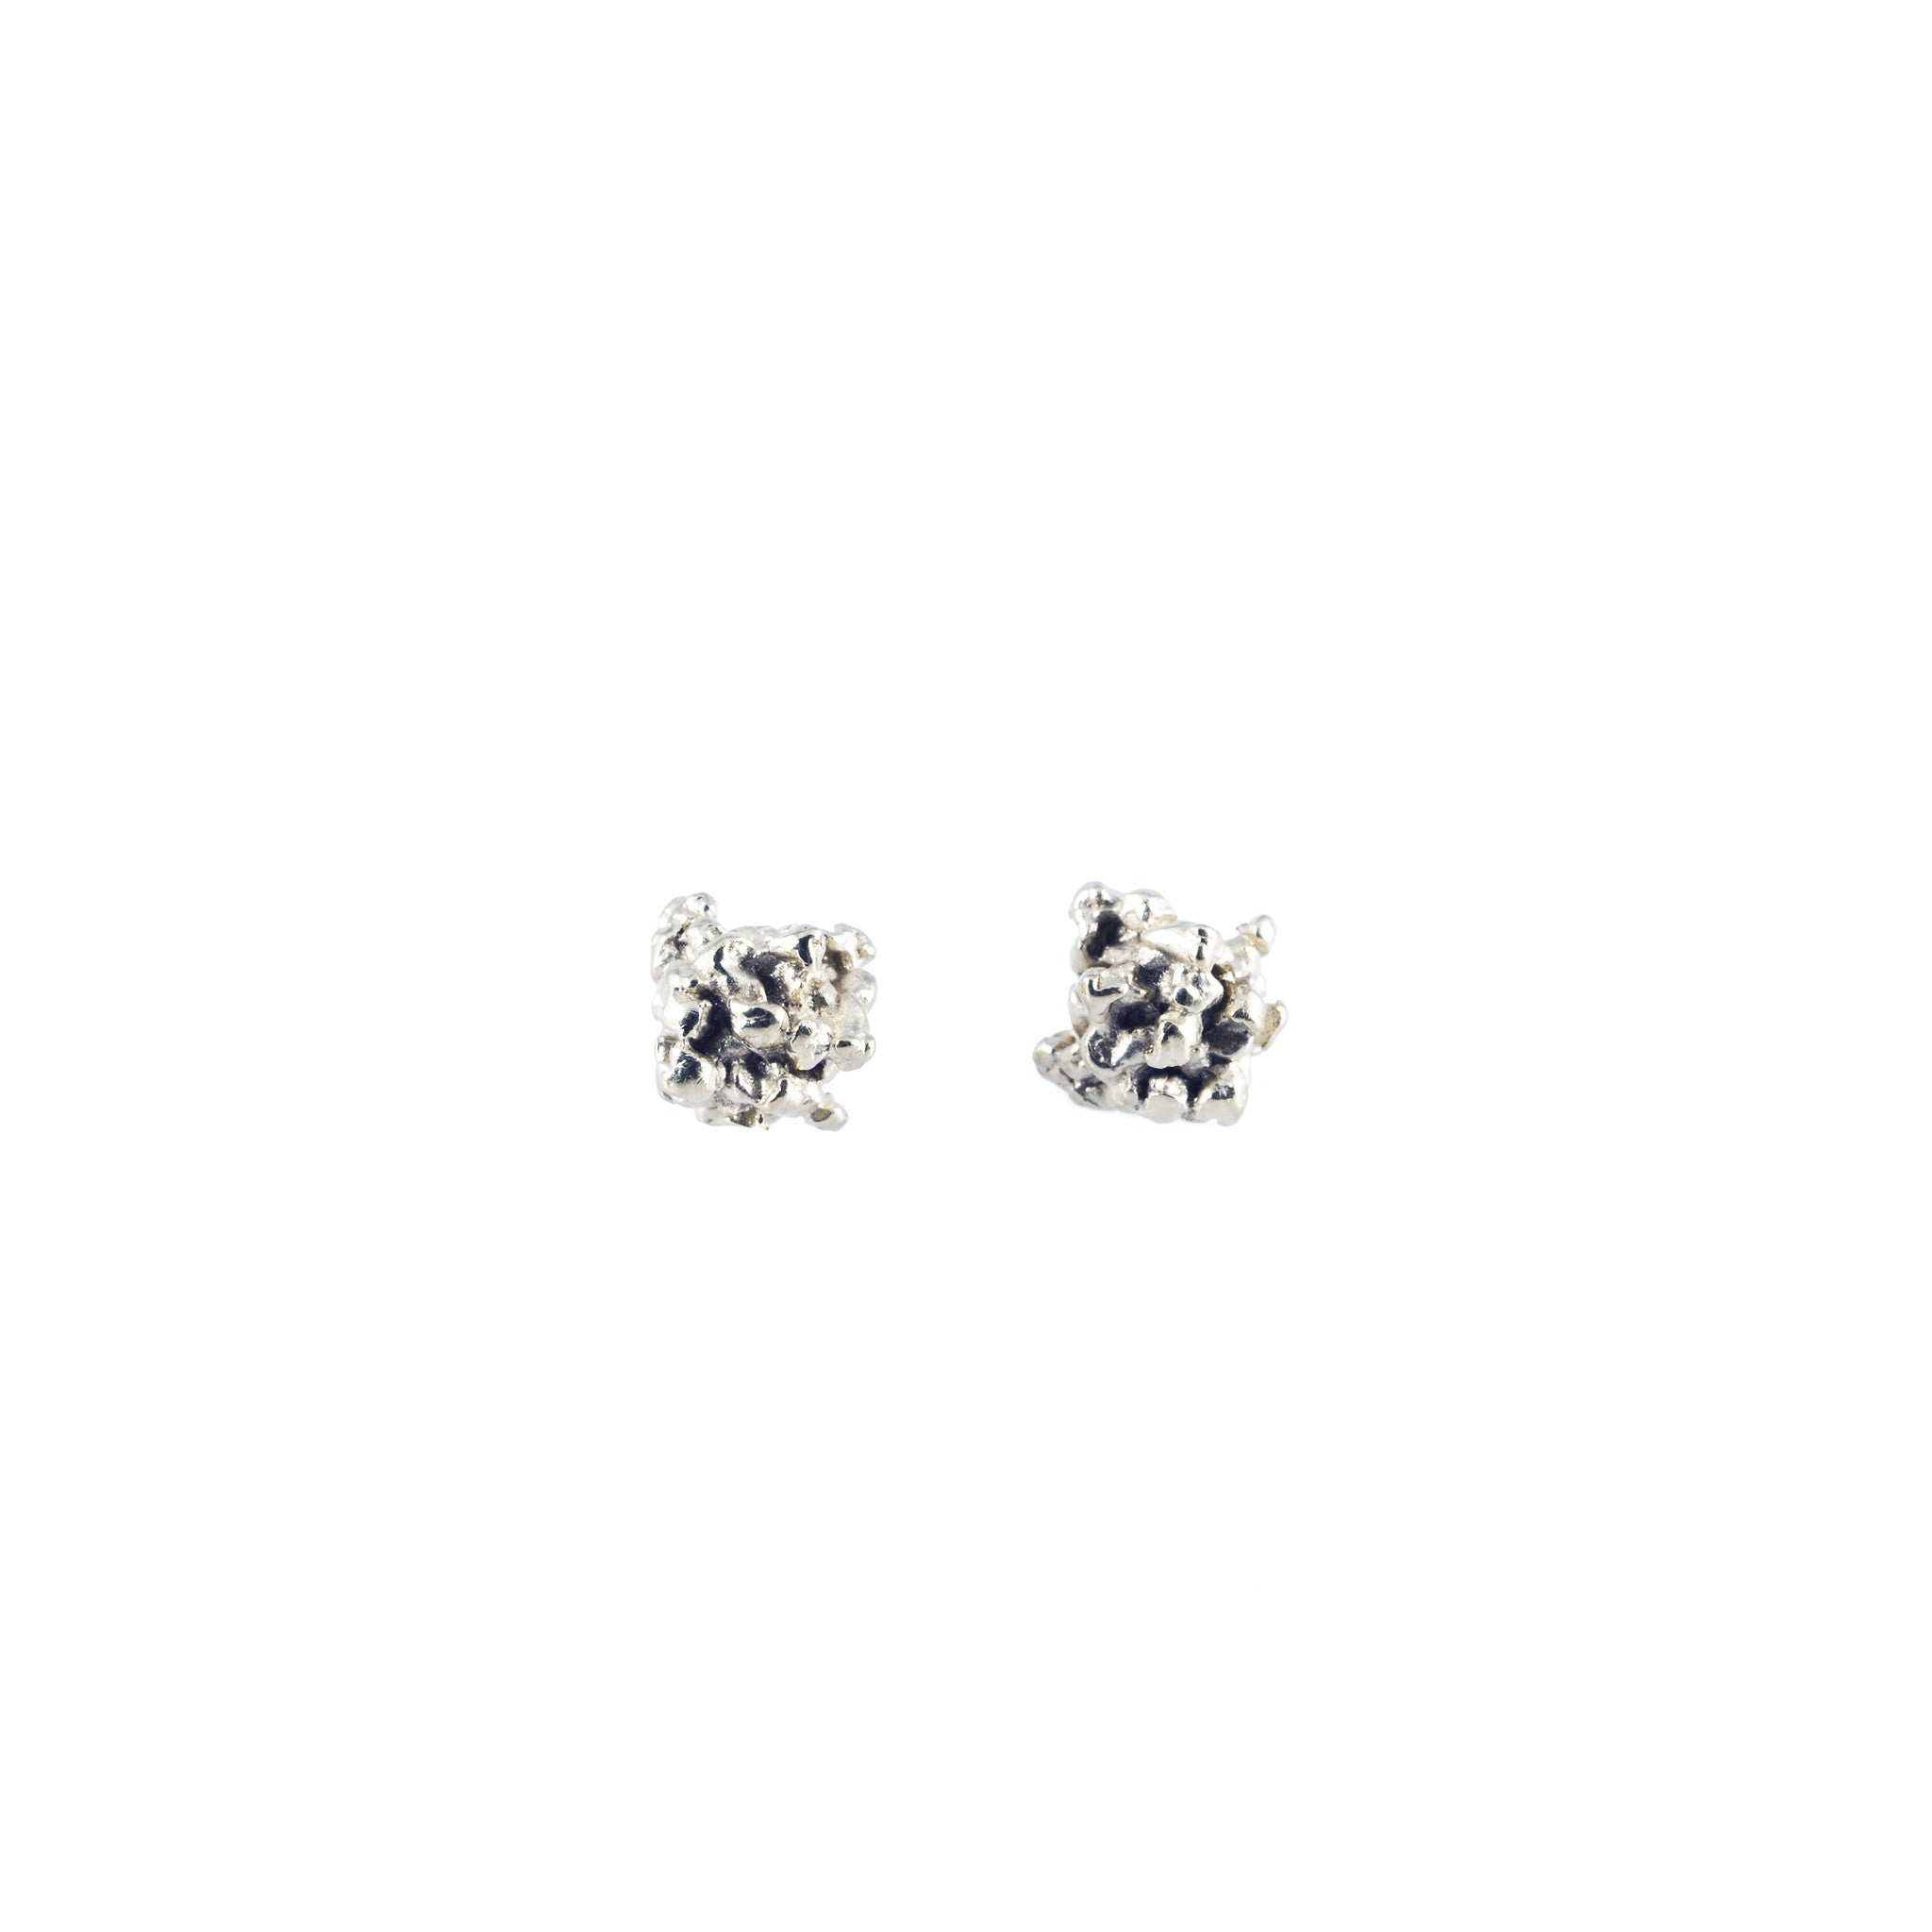 products della flower earrings diamond zirconia rhodium faux girls cz silver beloved studs floral stud women cubic floer jewellery